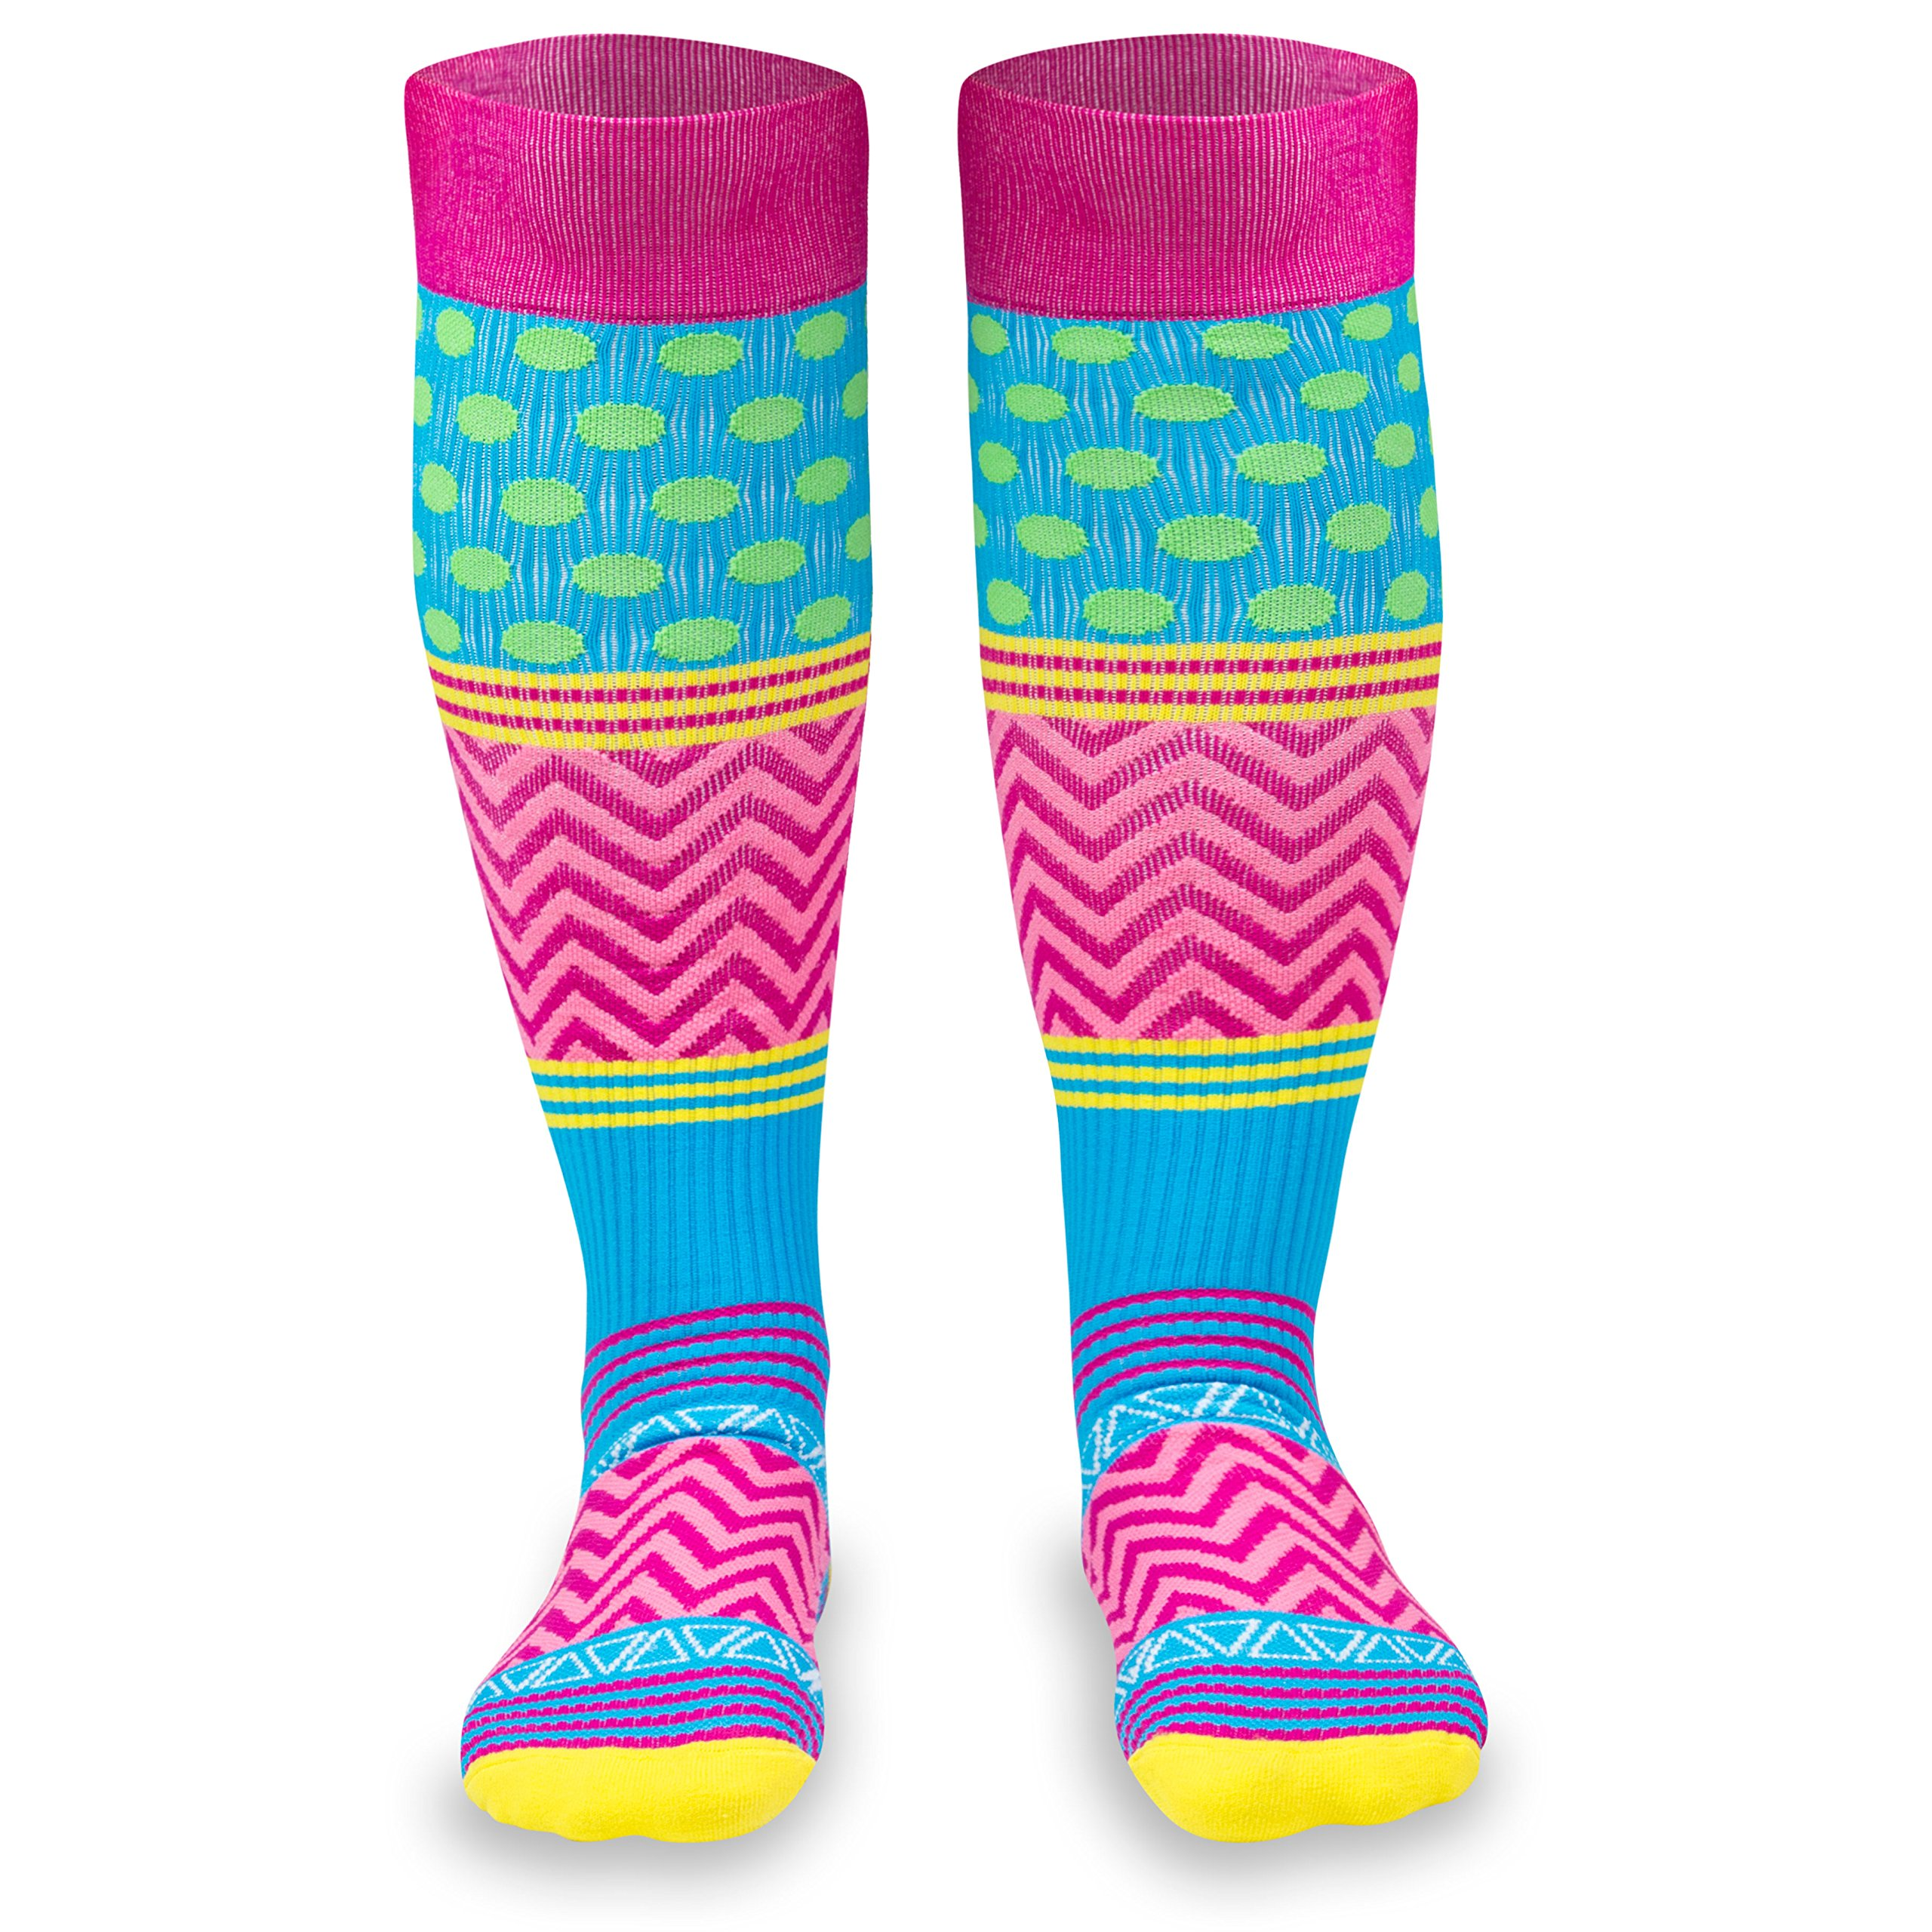 Crazy for Color Compression Socks | Athletic Knee Socks by Gone For a Run | Medium